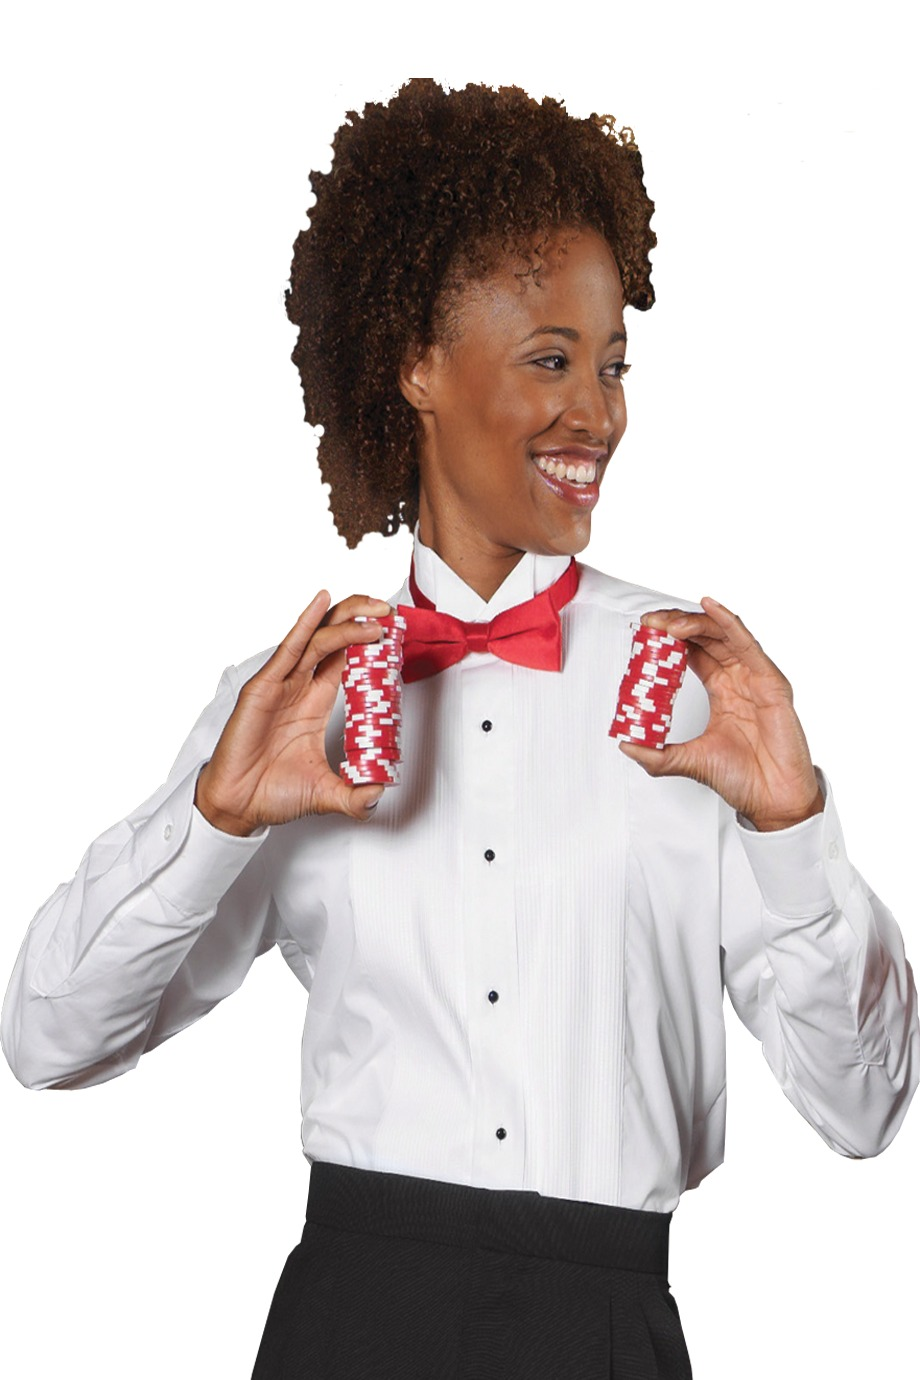 Edwards Garment 5390 - Women's Tuxedo Shirt